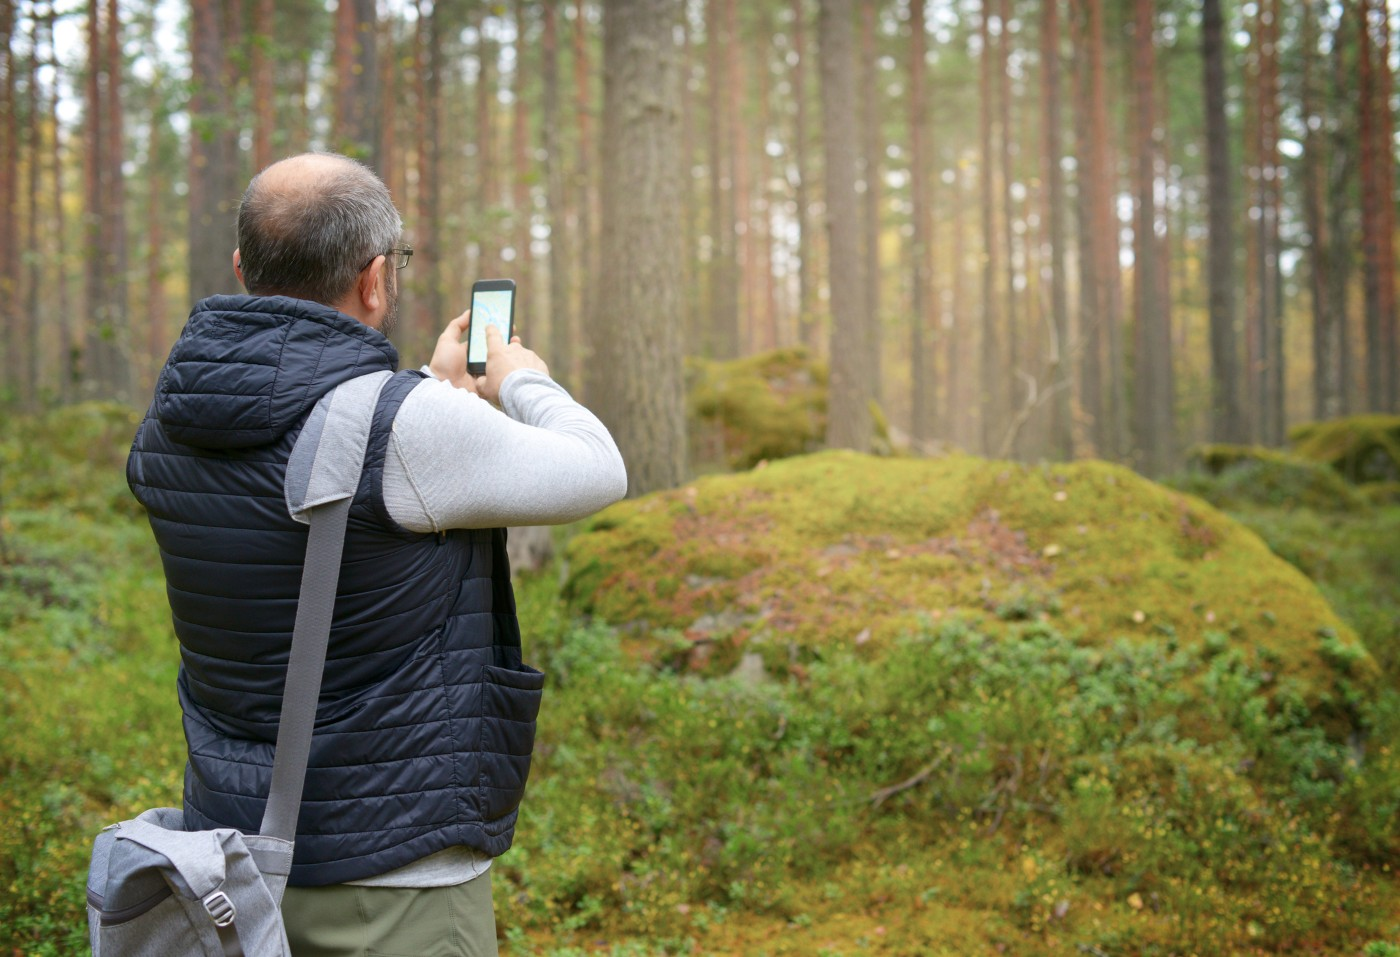 https://tickertapecdn.tdameritrade.com/assets/images/pages/md/Man in woods using mobile map app: Seeking direction? Average Directional Index